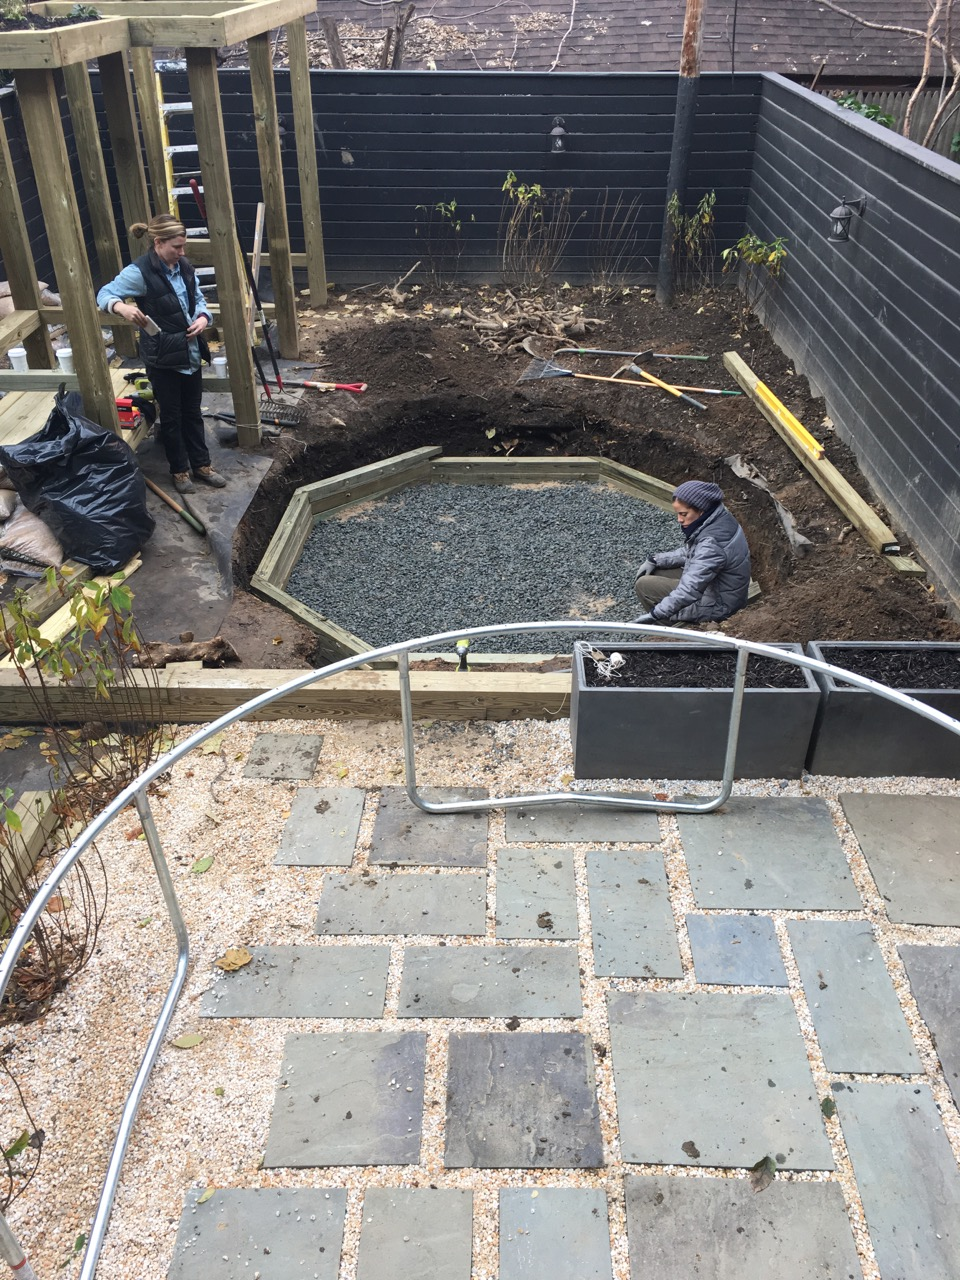 Installation of the sunken trampoline, at grade level